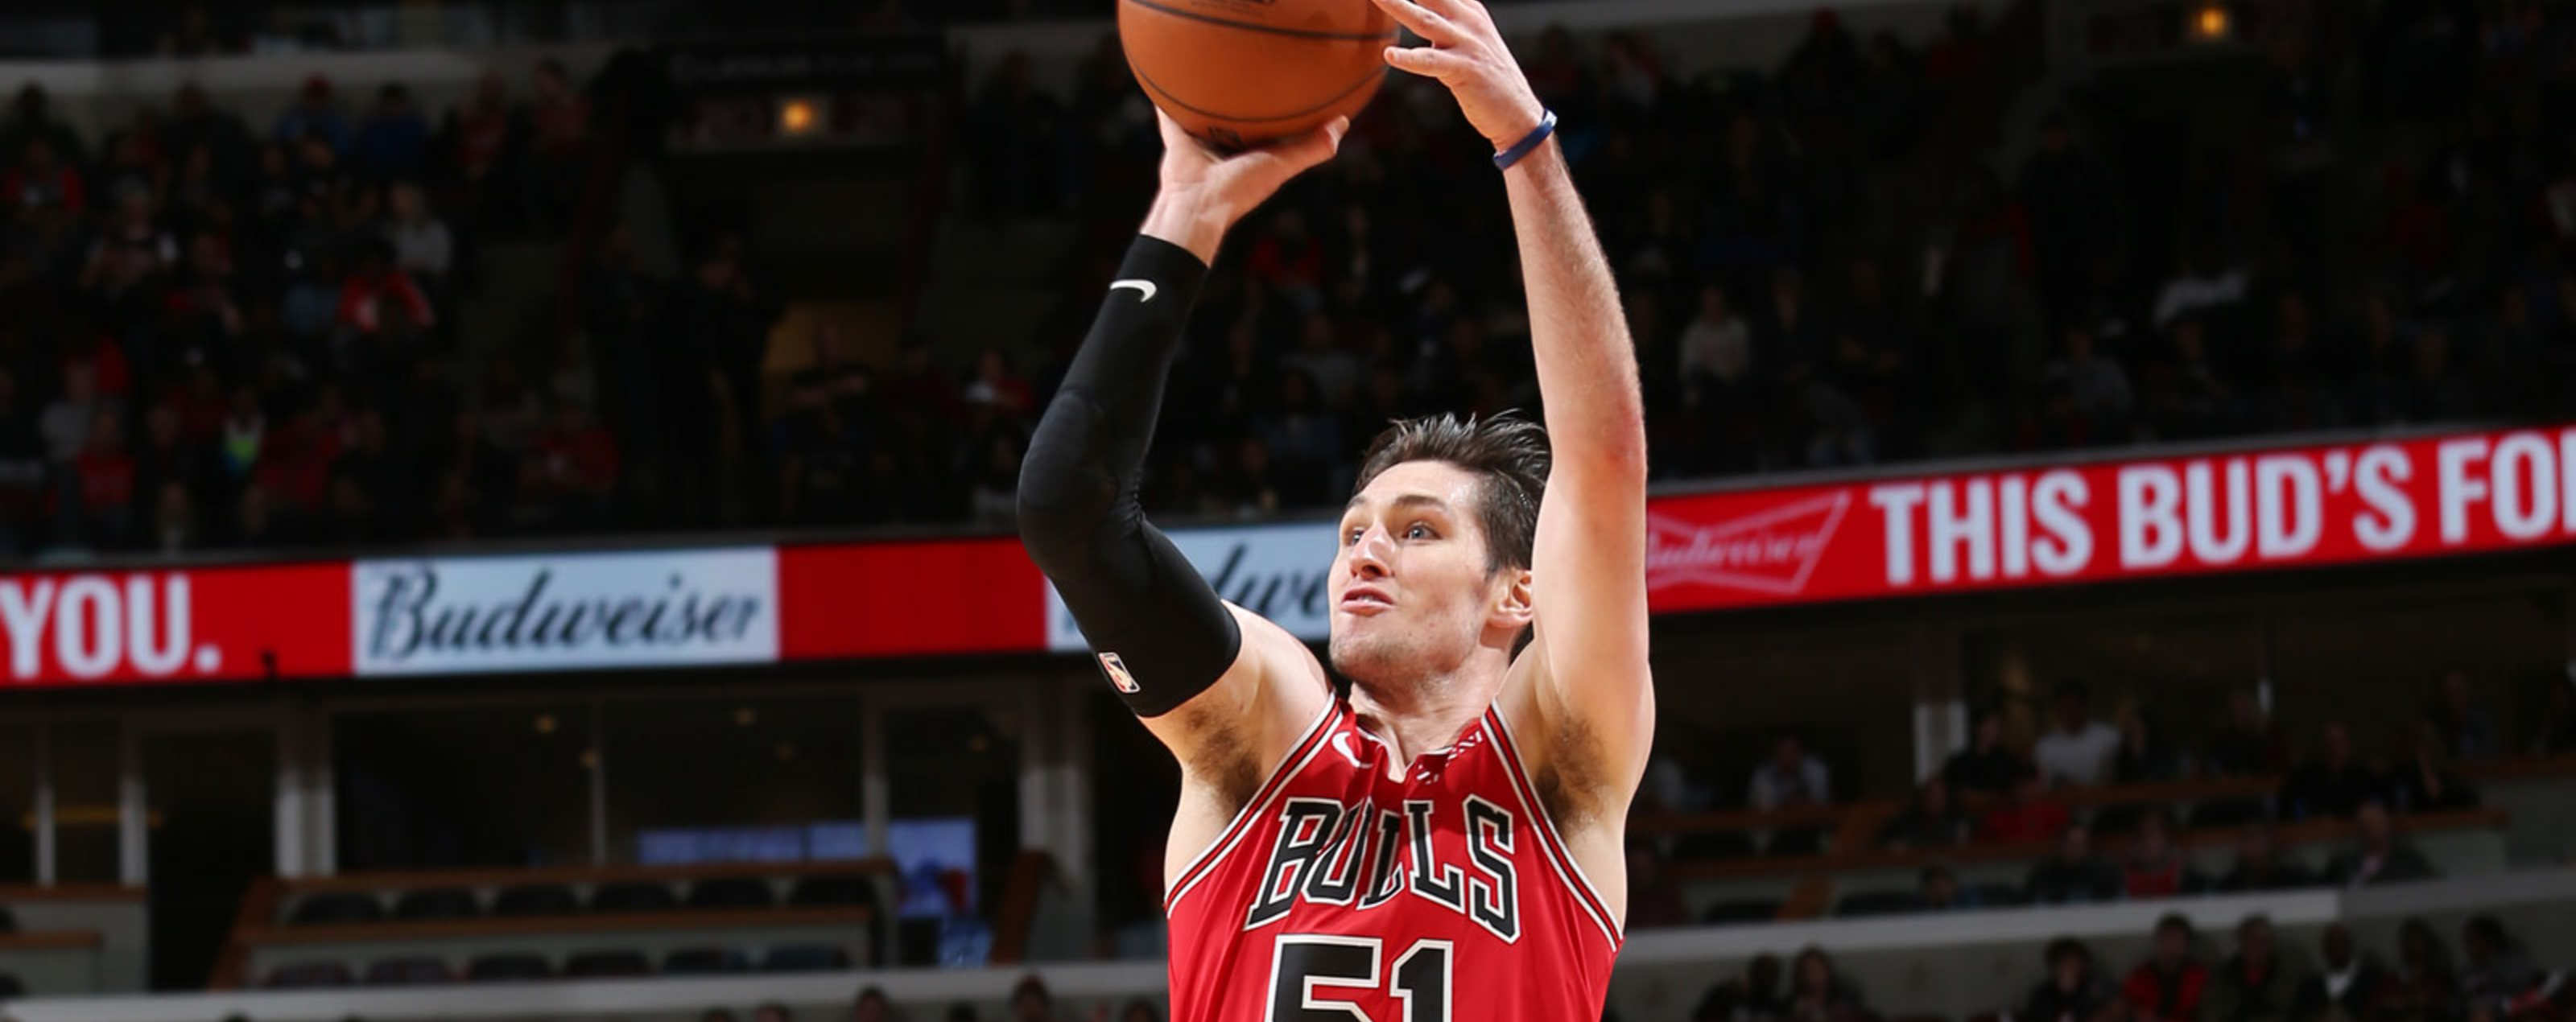 Ryan Arcidiacono 51 of the Chicago Bulls shoots the ball against the  Toronto Raptors on